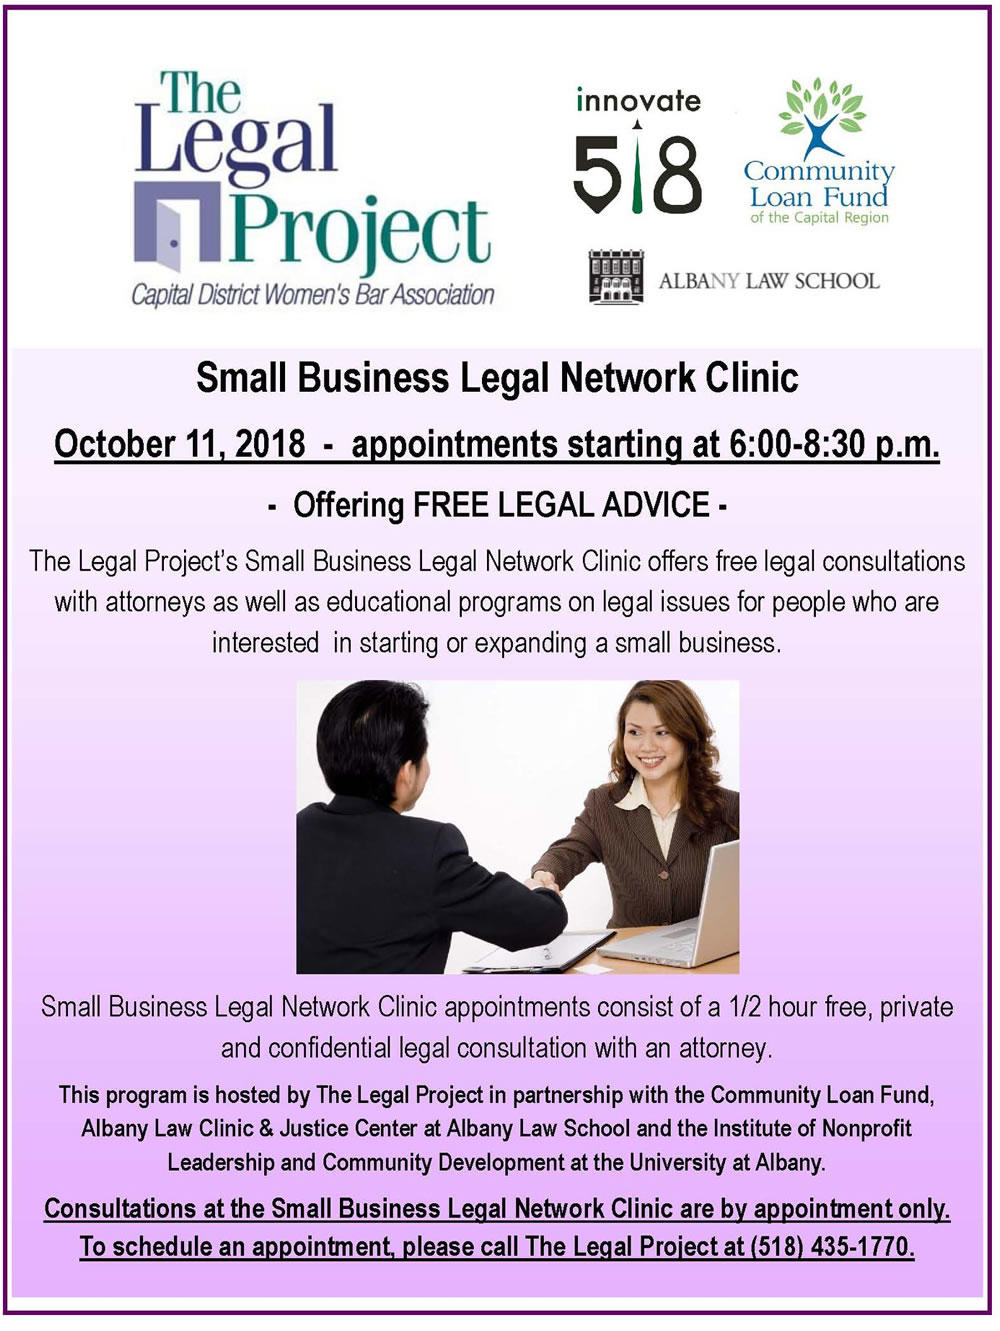 Legal Project small business legal clinic poster 2018-October